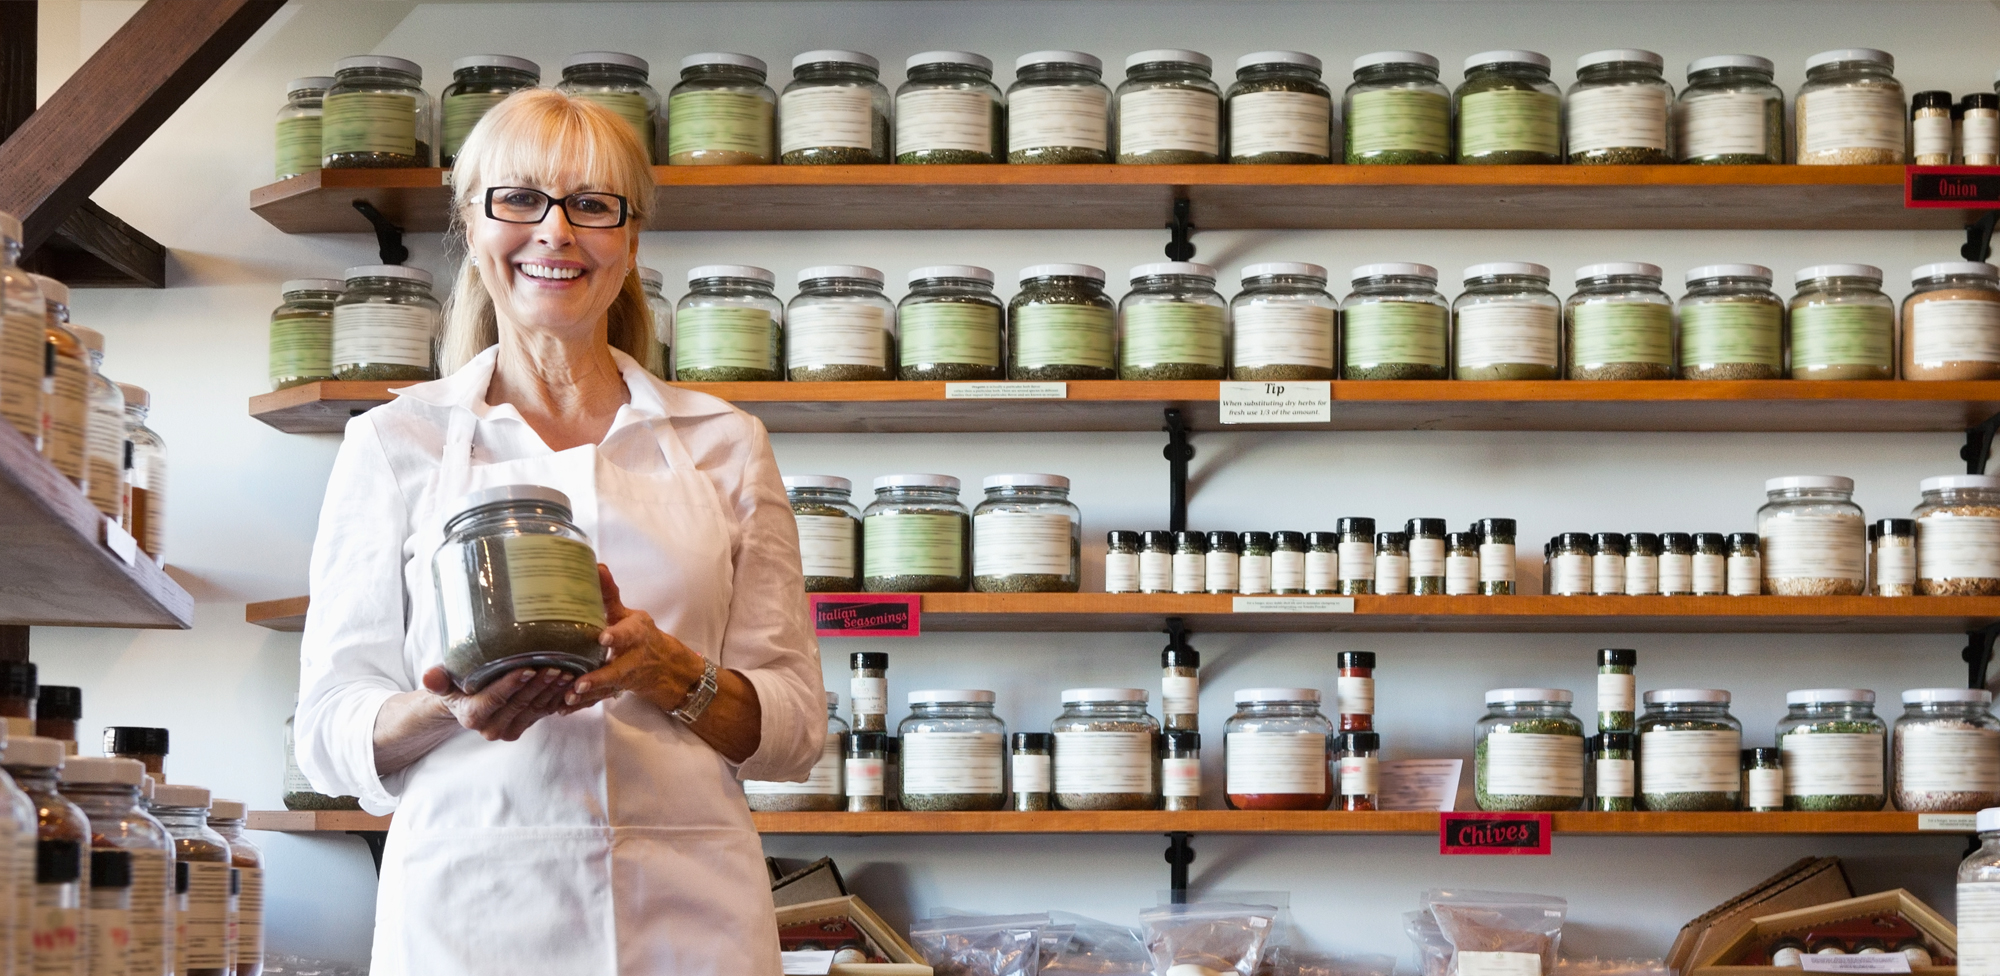 a business owner holding a glass jar in front of a wall filled with glass jars